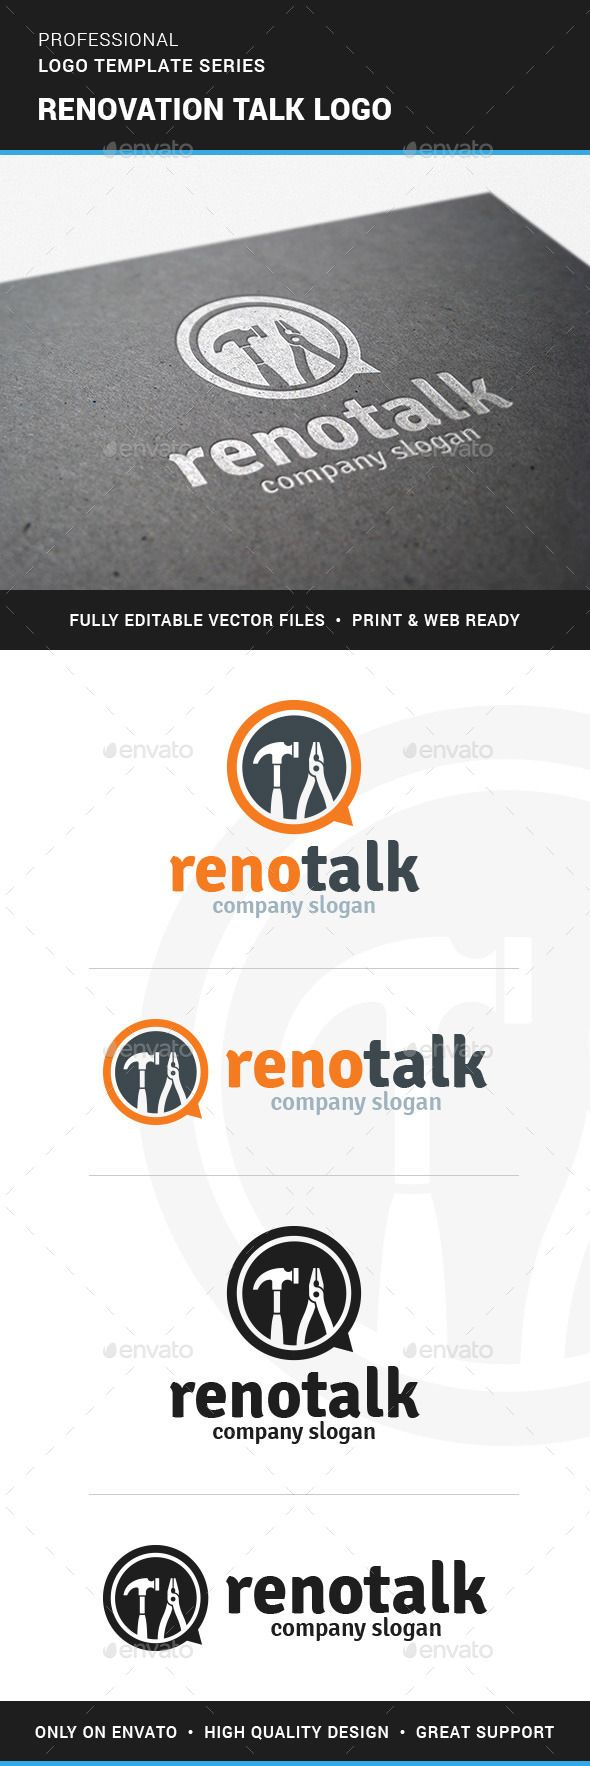 Renovation Talk Logo Template by LiveAtTheBBQ The Renovation Talk Logo TemplateA creative and modern logo for carpentry, construction and repair services. All elements are ful